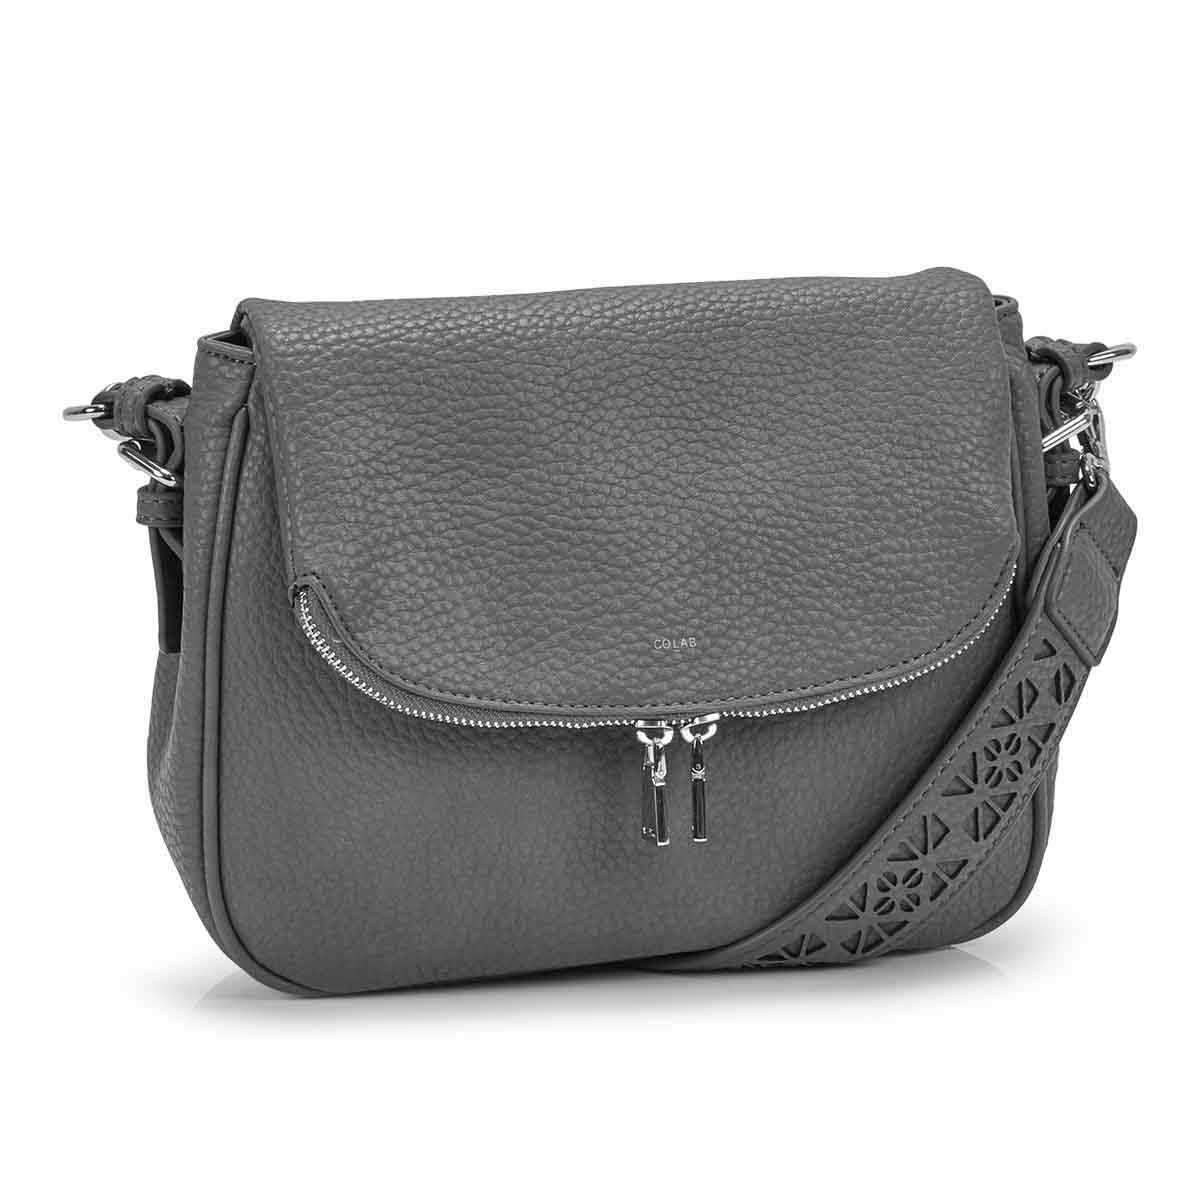 Women's SASHA grey hobo crossbody bag